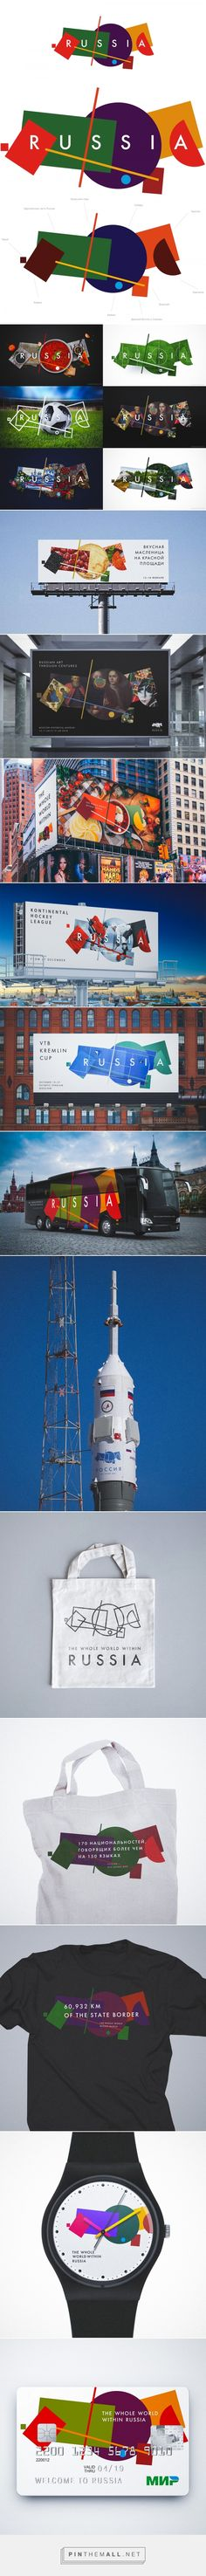 Brand New: New Logo and Identity for Russia Tourism... - a grouped images picture - Pin Them All